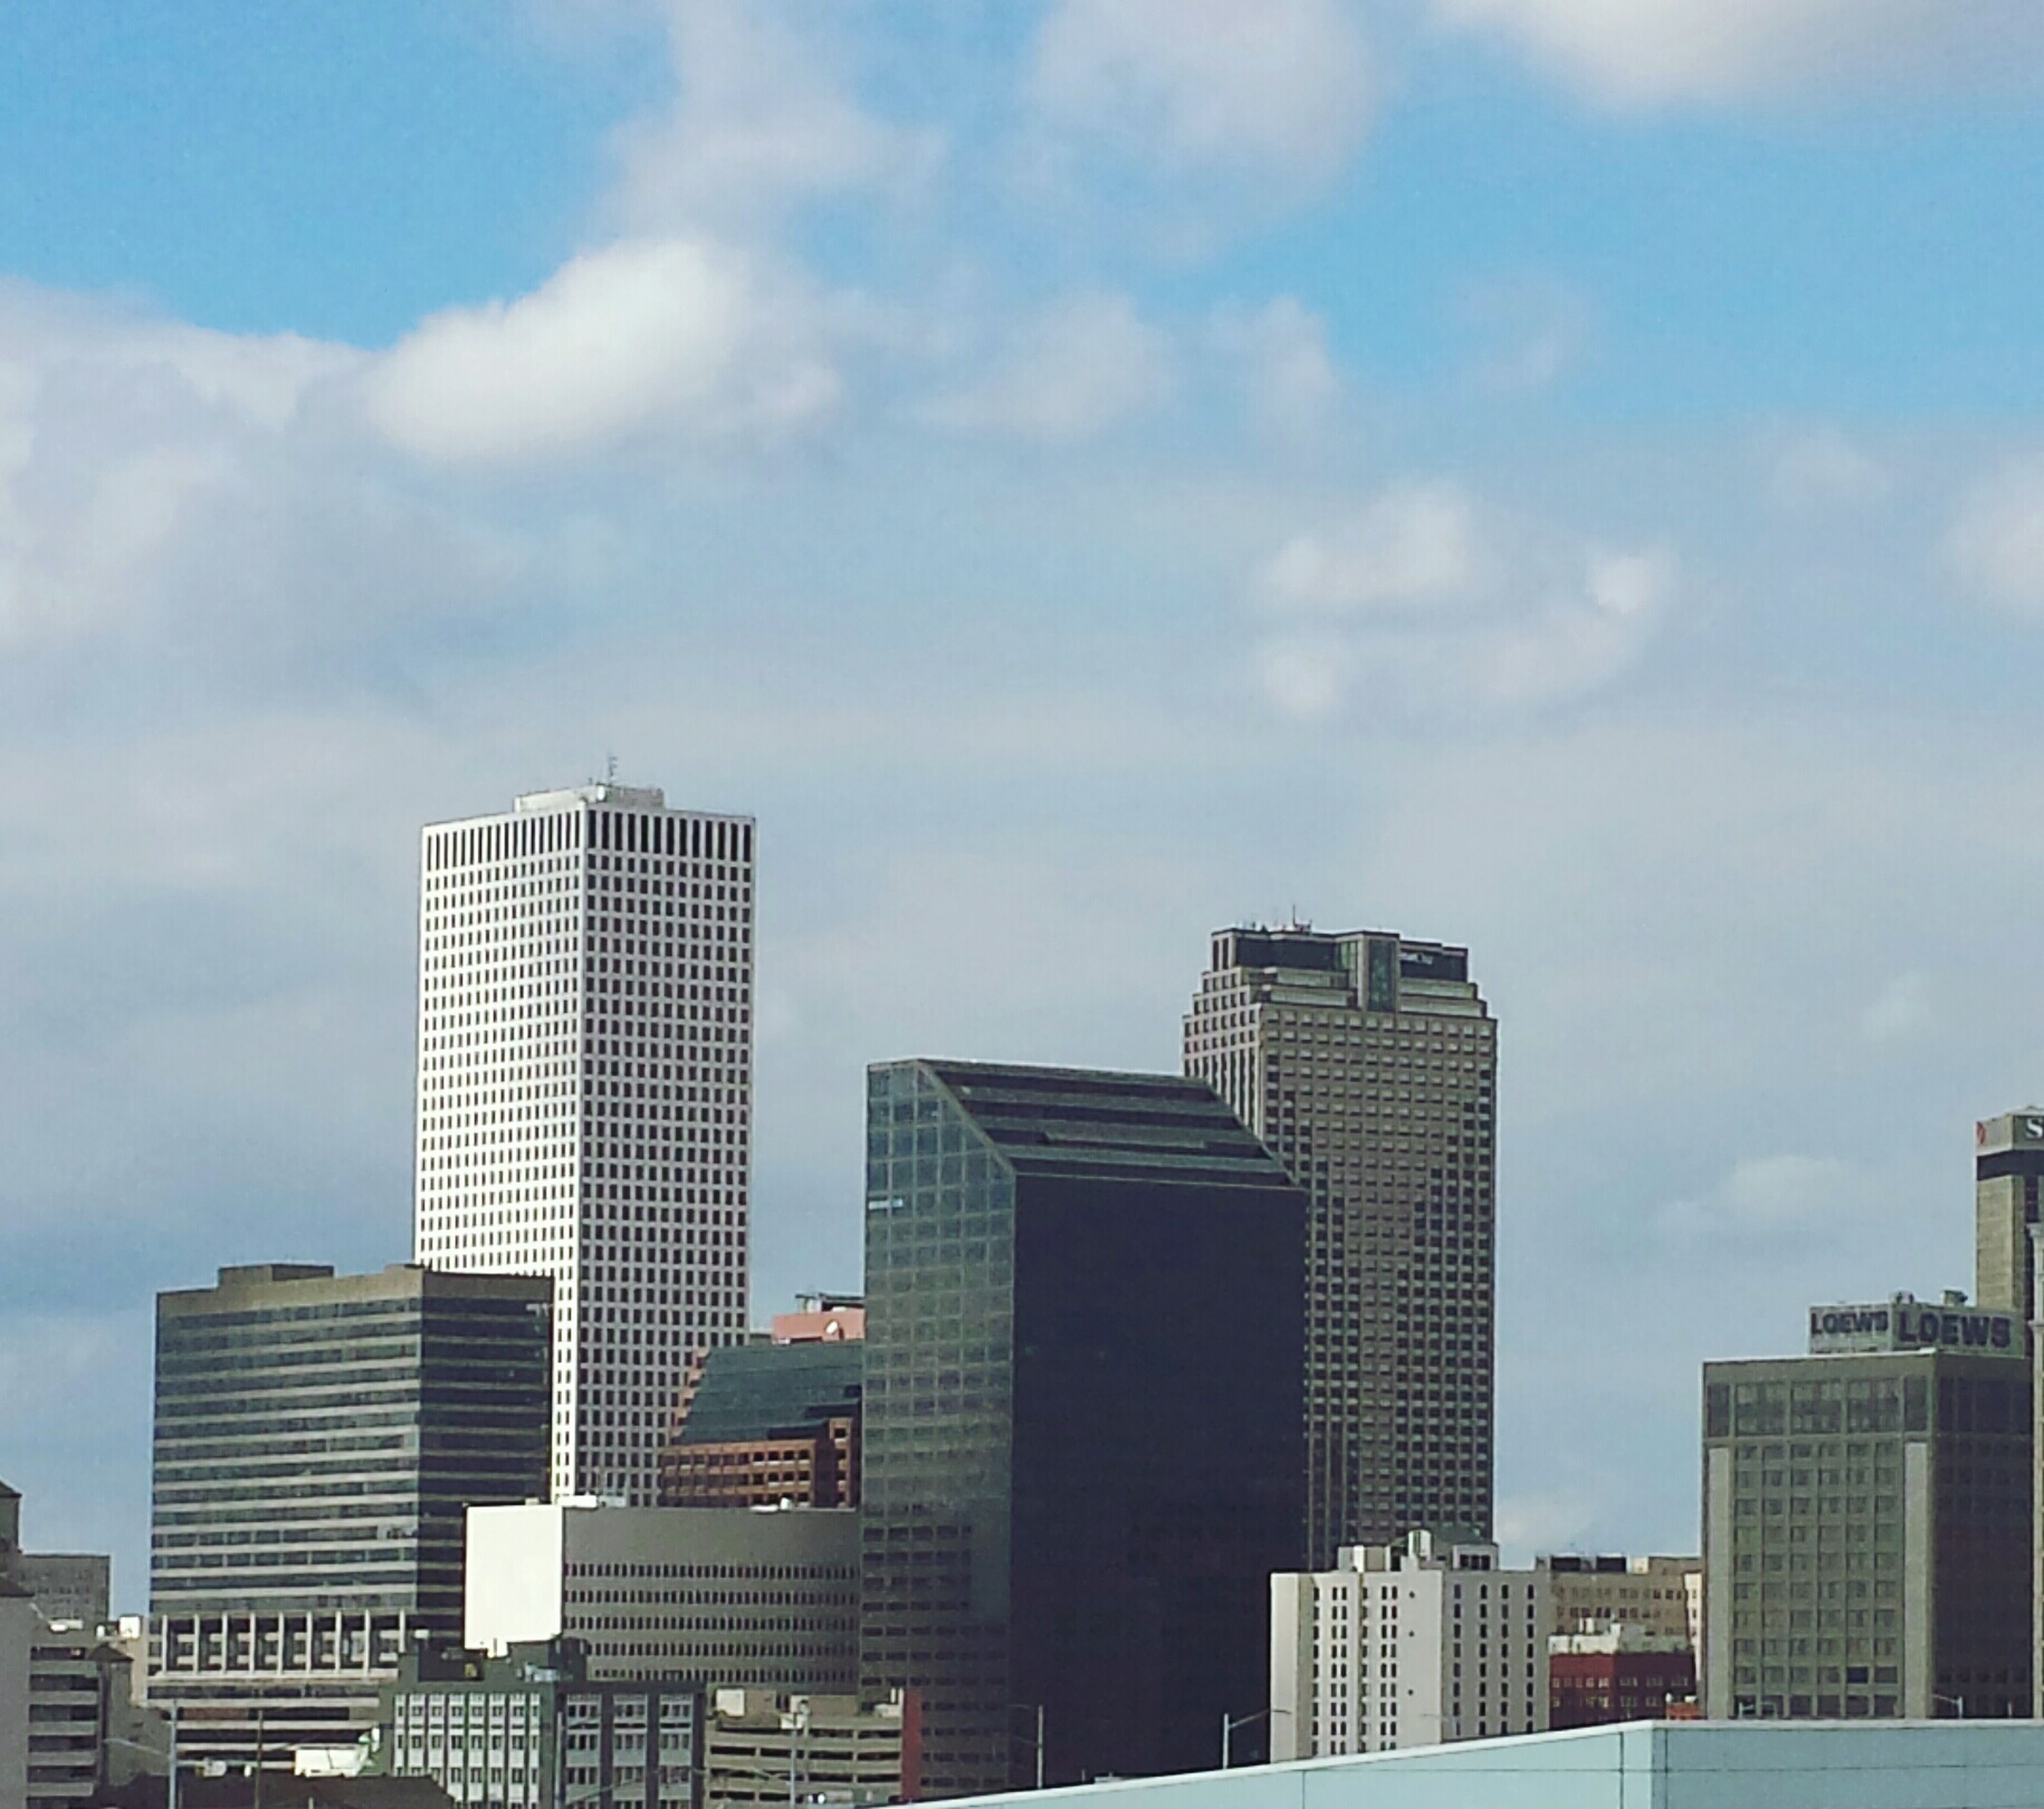 building exterior, architecture, city, built structure, skyscraper, modern, office building, sky, tall - high, tower, cityscape, urban skyline, low angle view, cloud - sky, financial district, building, cloud, city life, skyline, tall